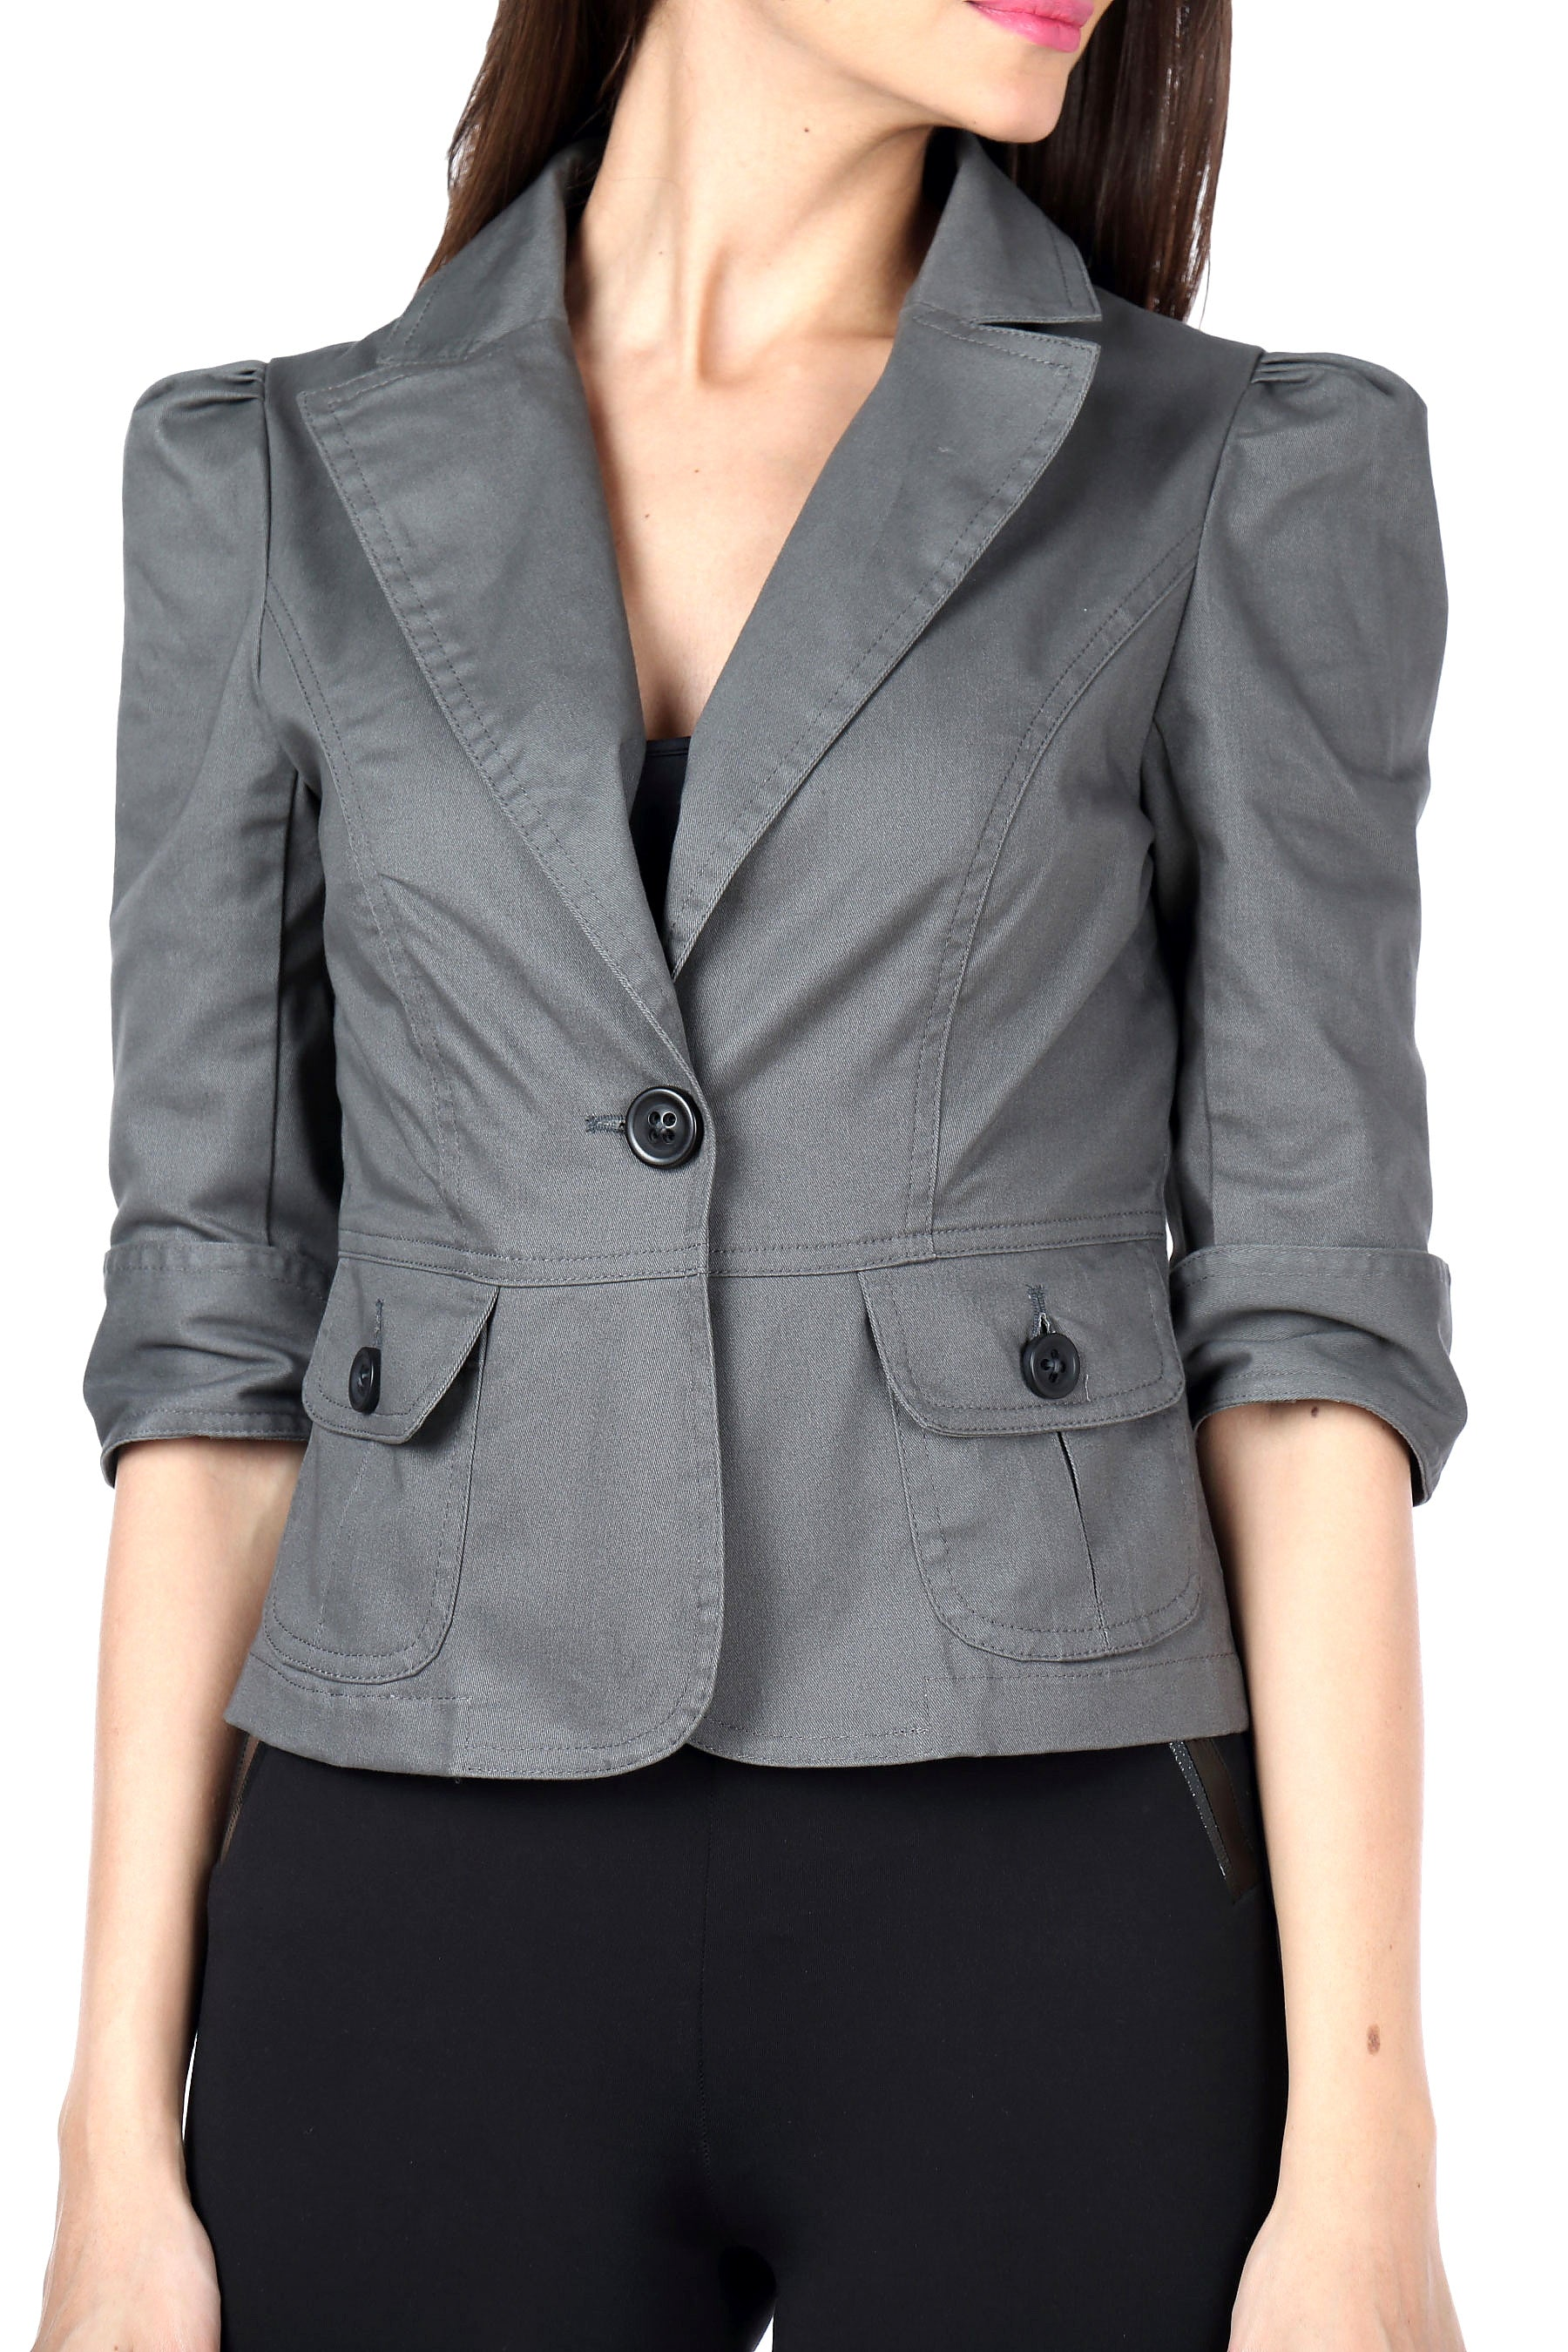 The Classic Jacket in Grey Close Up